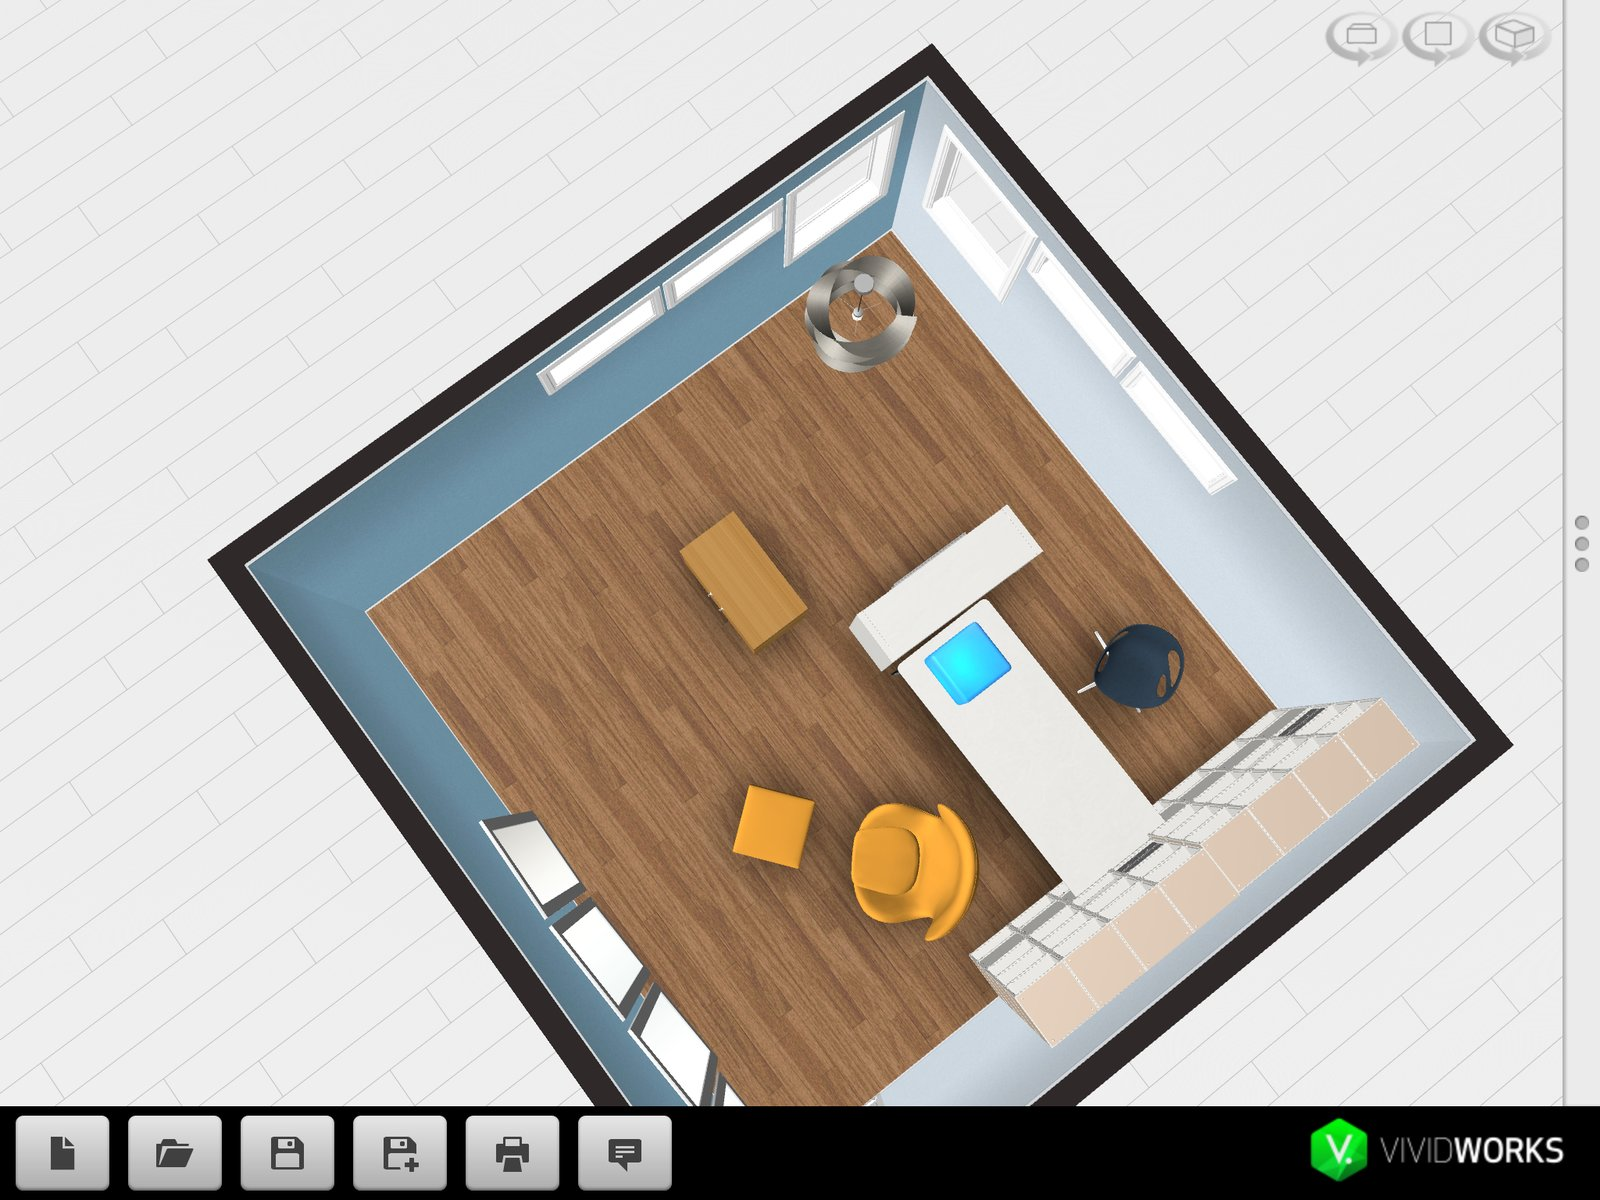 Wilson said the app would help her work with clients without having to build a 3D-version of their homes, which takes much longer.  Office by Moving Body Culture